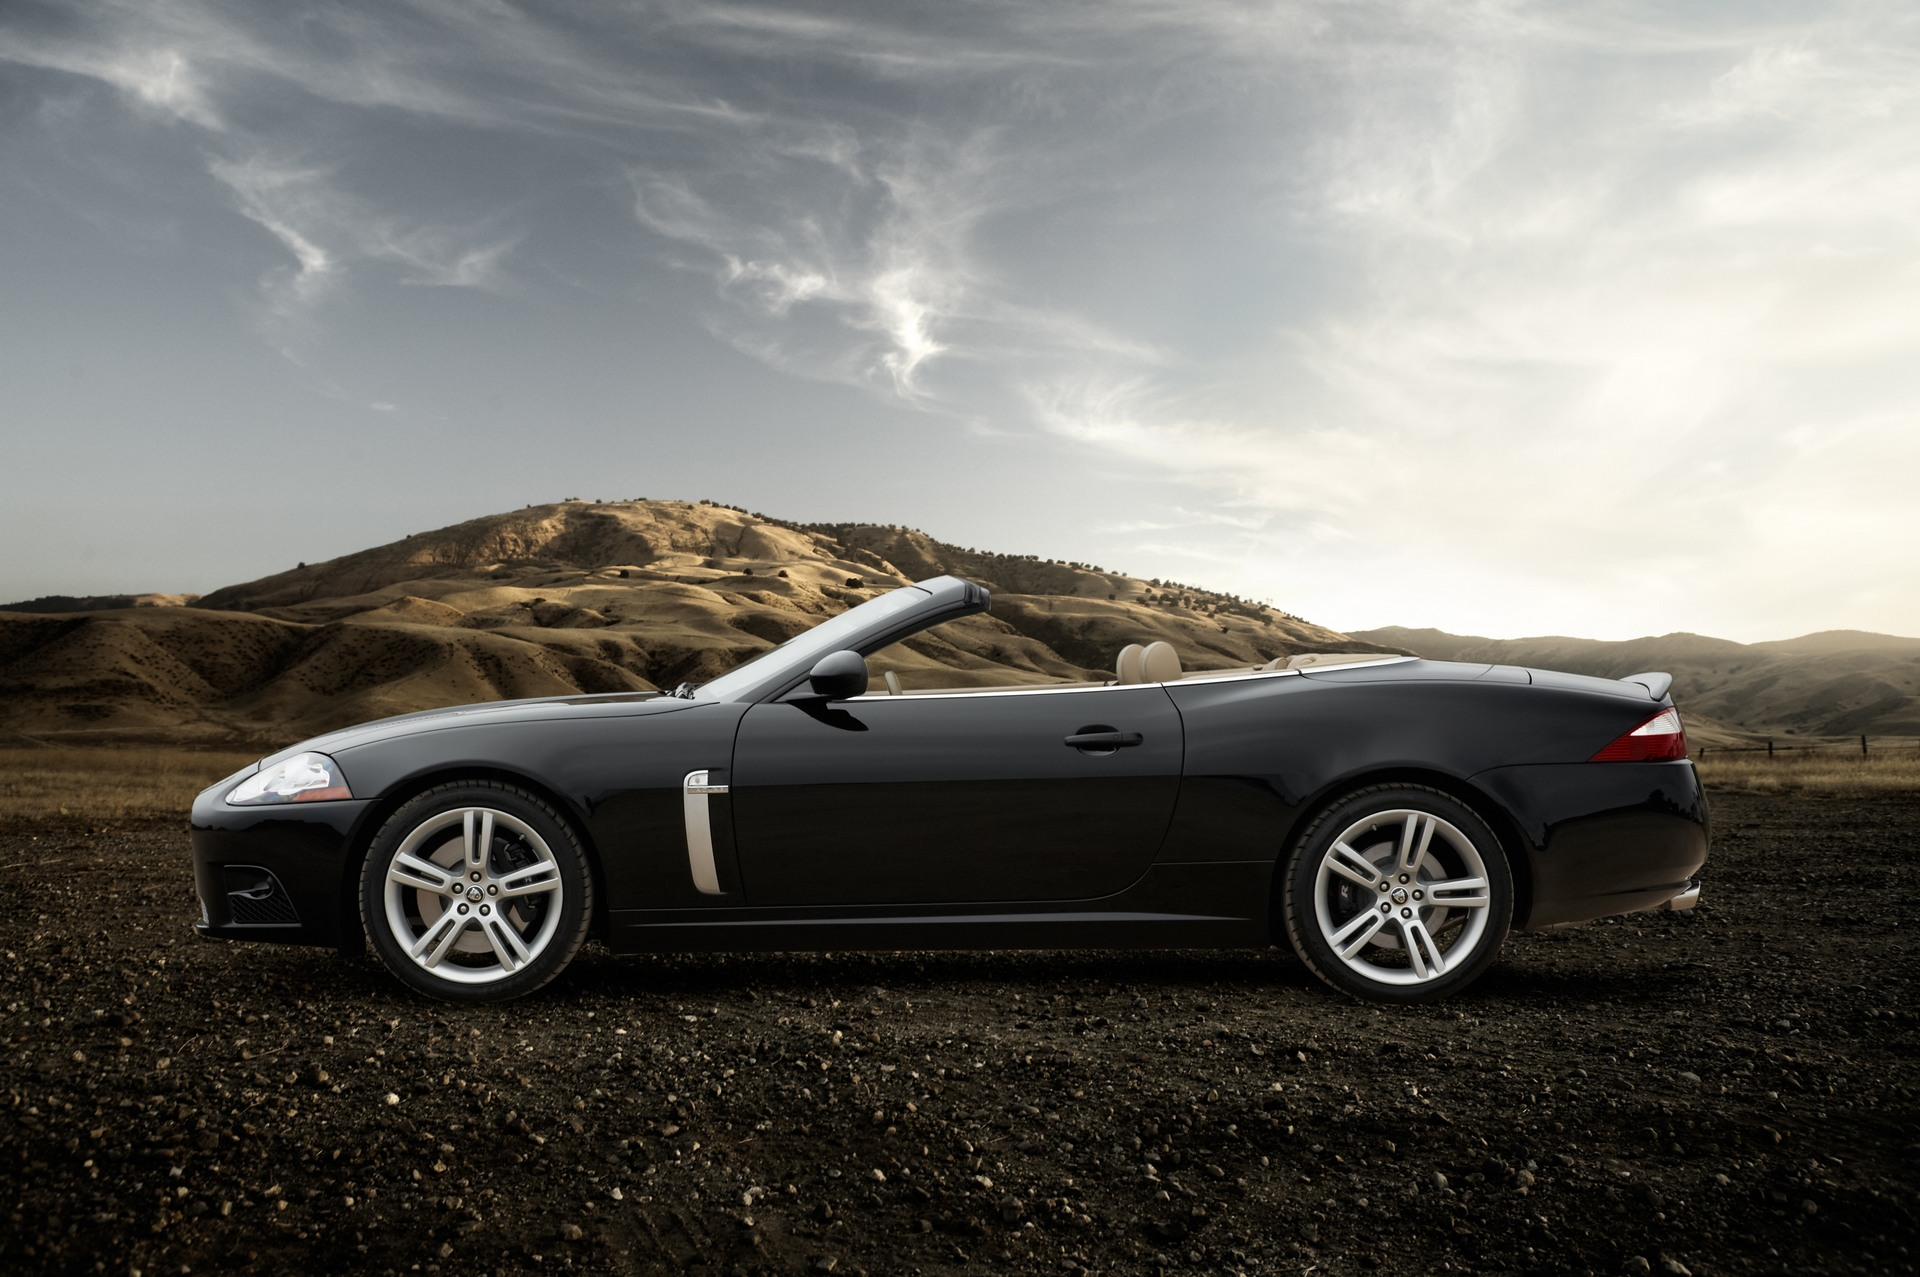 Black Jaguar XK Convertible